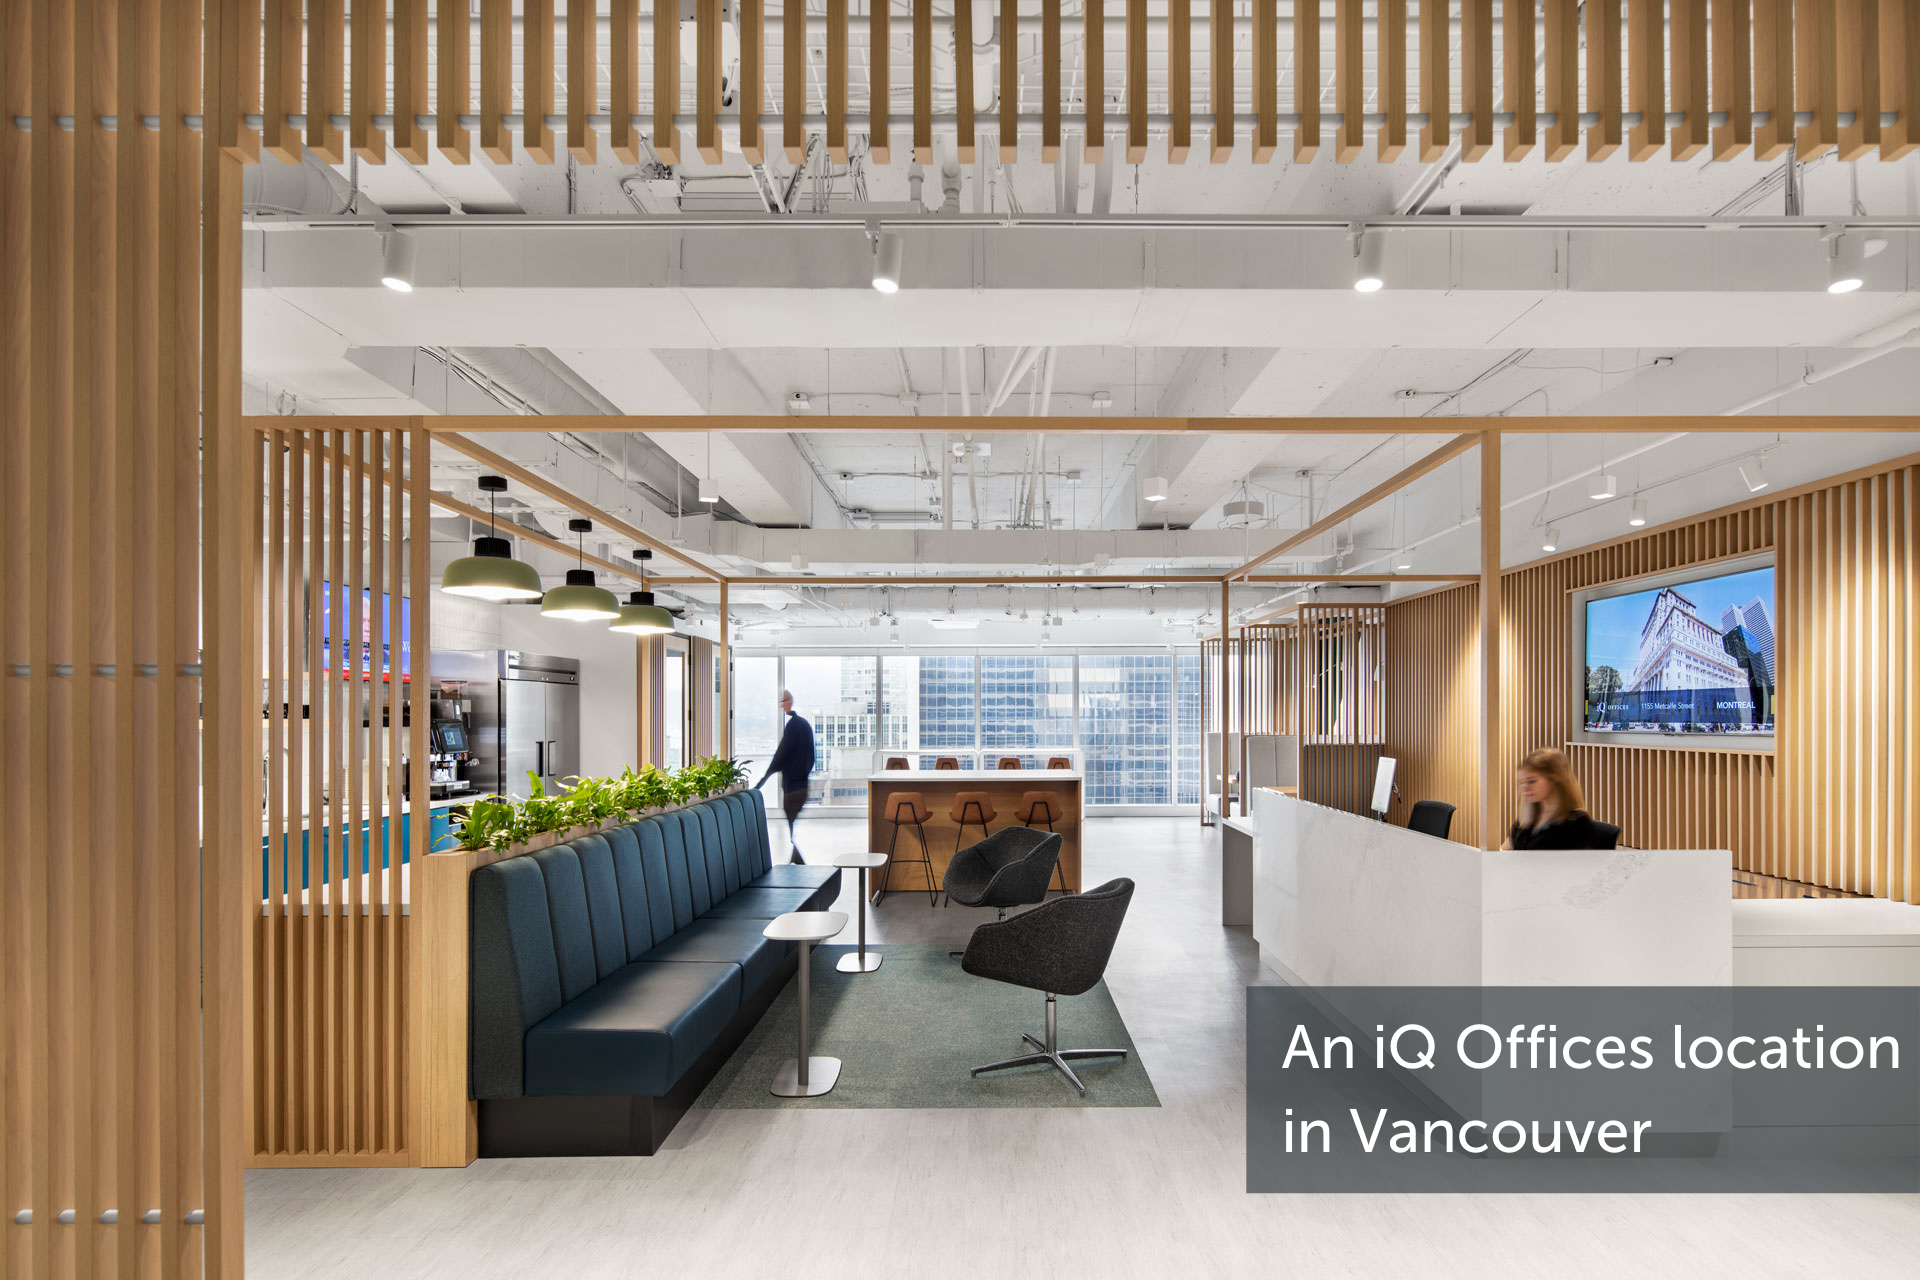 Canada-based iQ Offices offers highly professional workspaces for enterprise teams and employees.